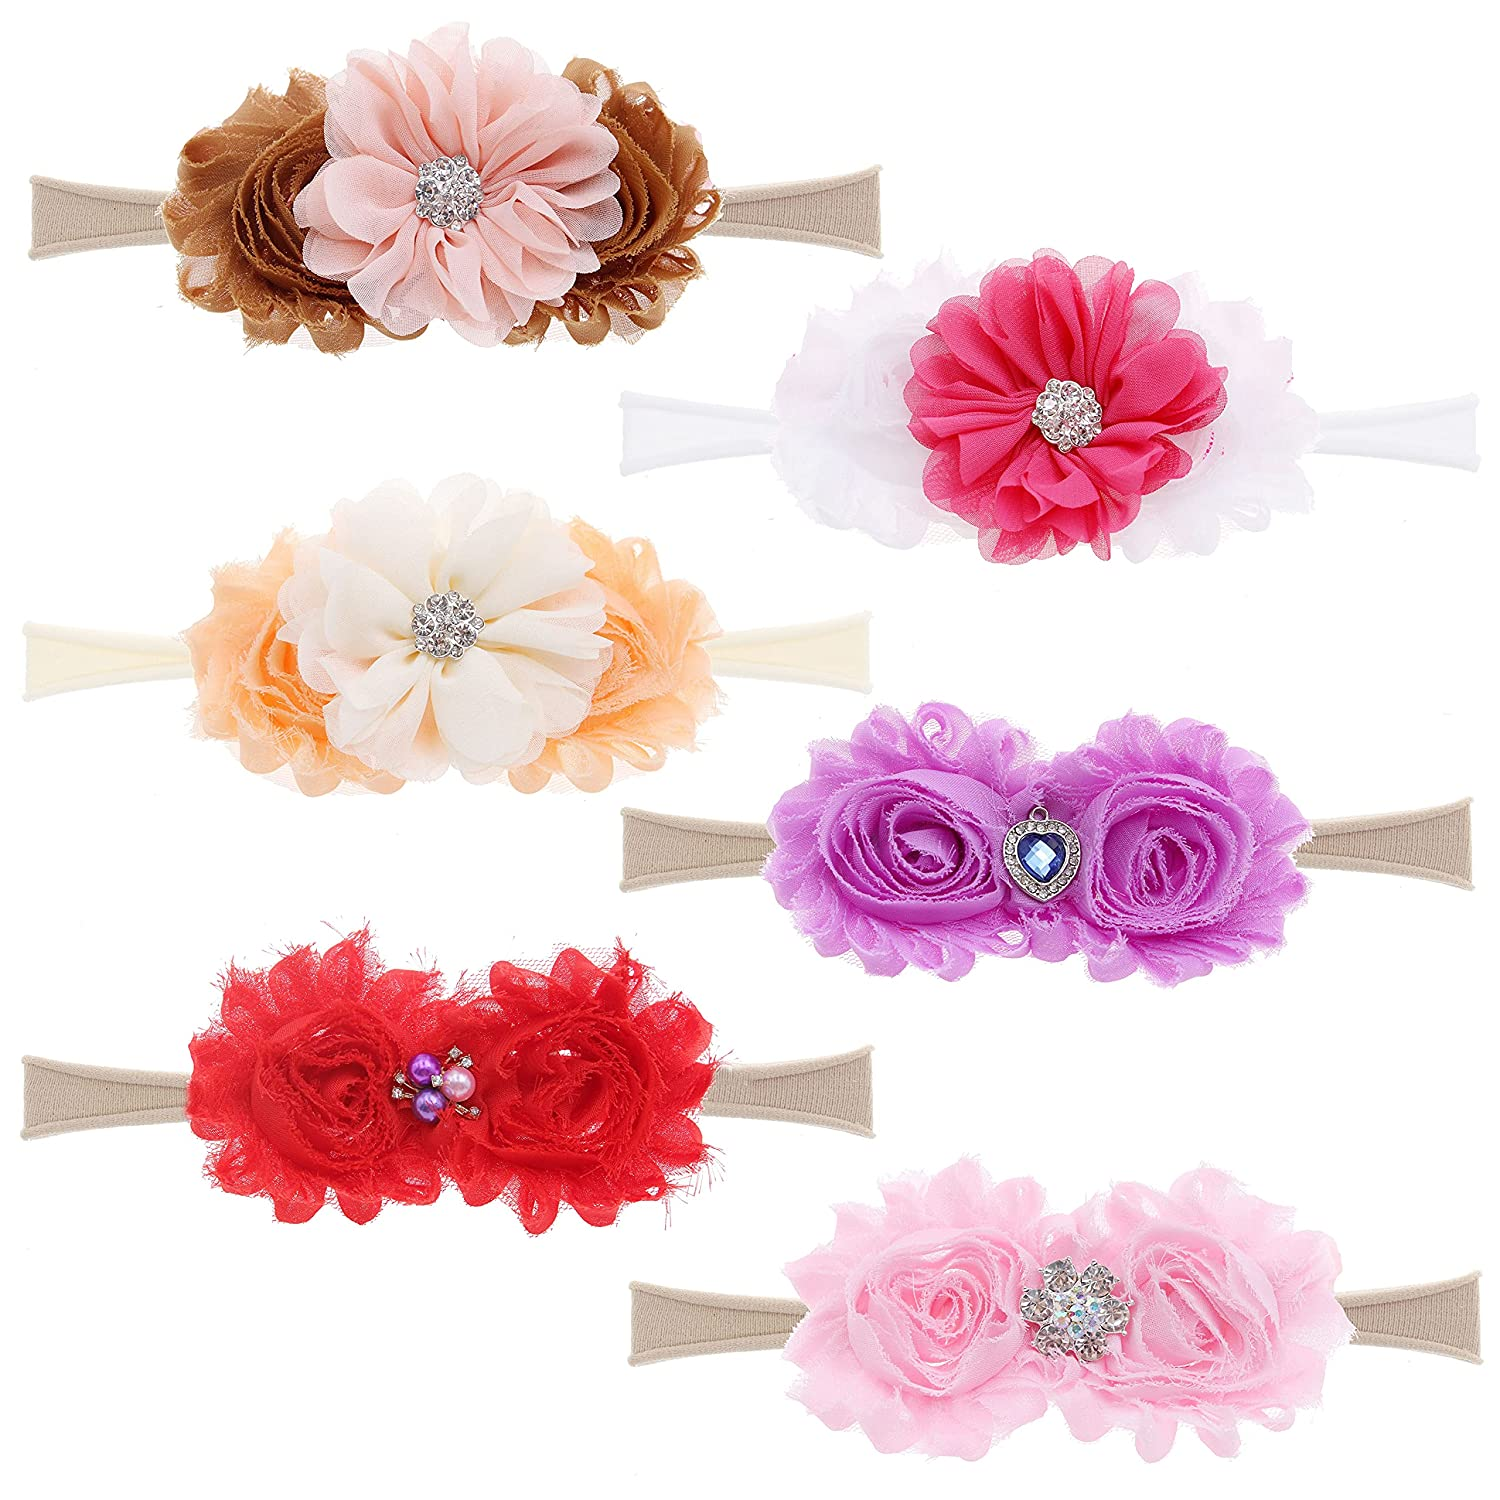 6PCS Don't miss the campaign Baby Headbands Super intense SALE Nylon Hairbands Bows Hair Elastics for